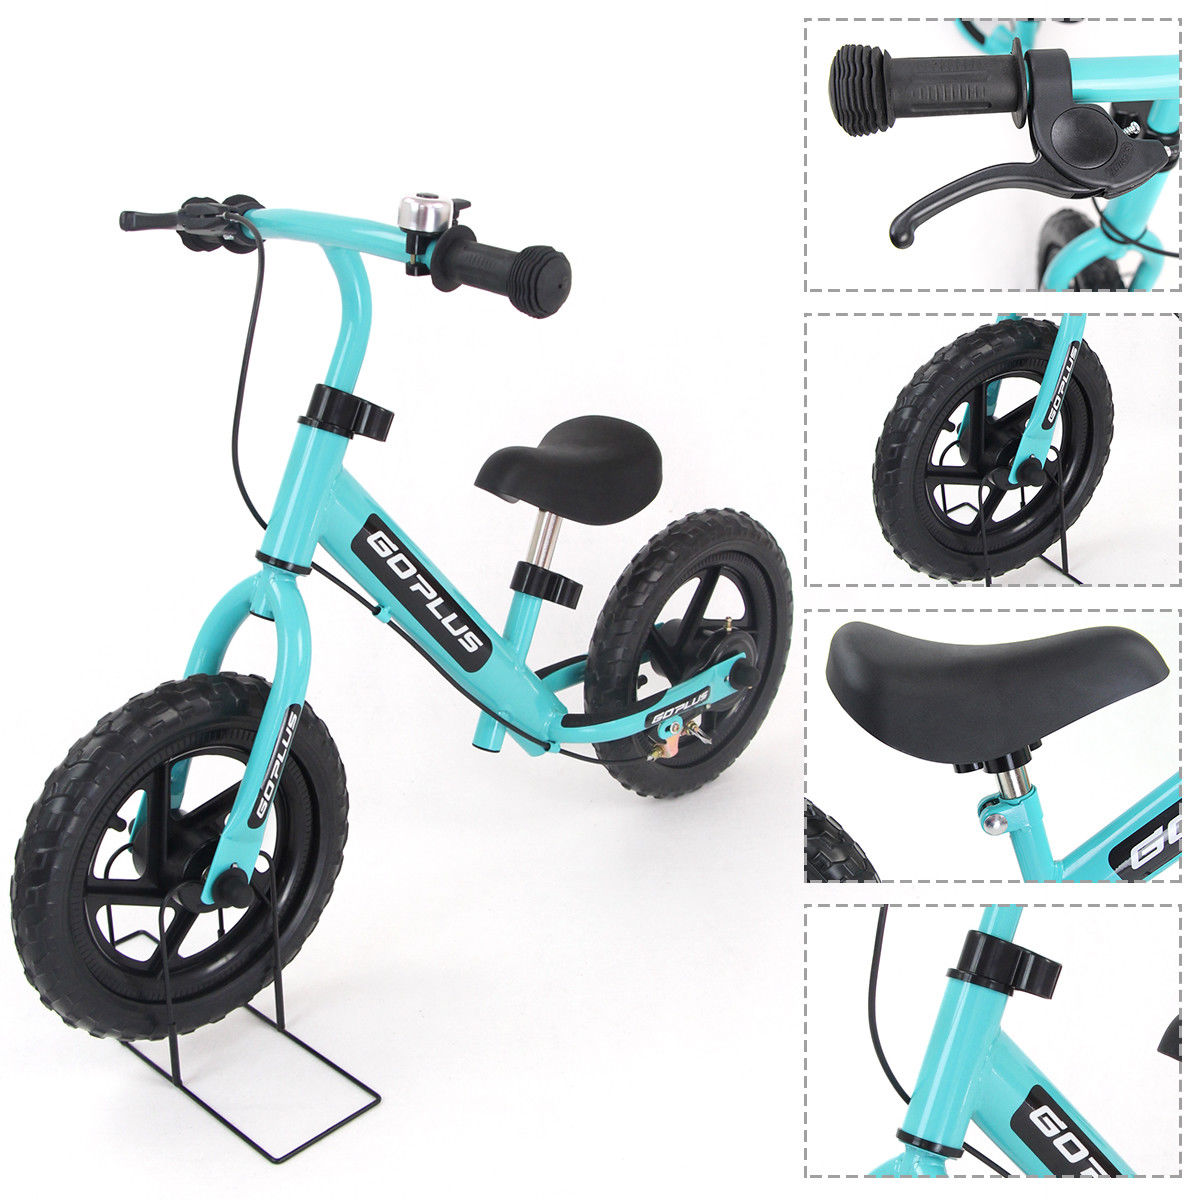 "GHP Navy Color 35""Lx18""Wx24""H Durable Child Balancing Training Bike w Bell and Brake"